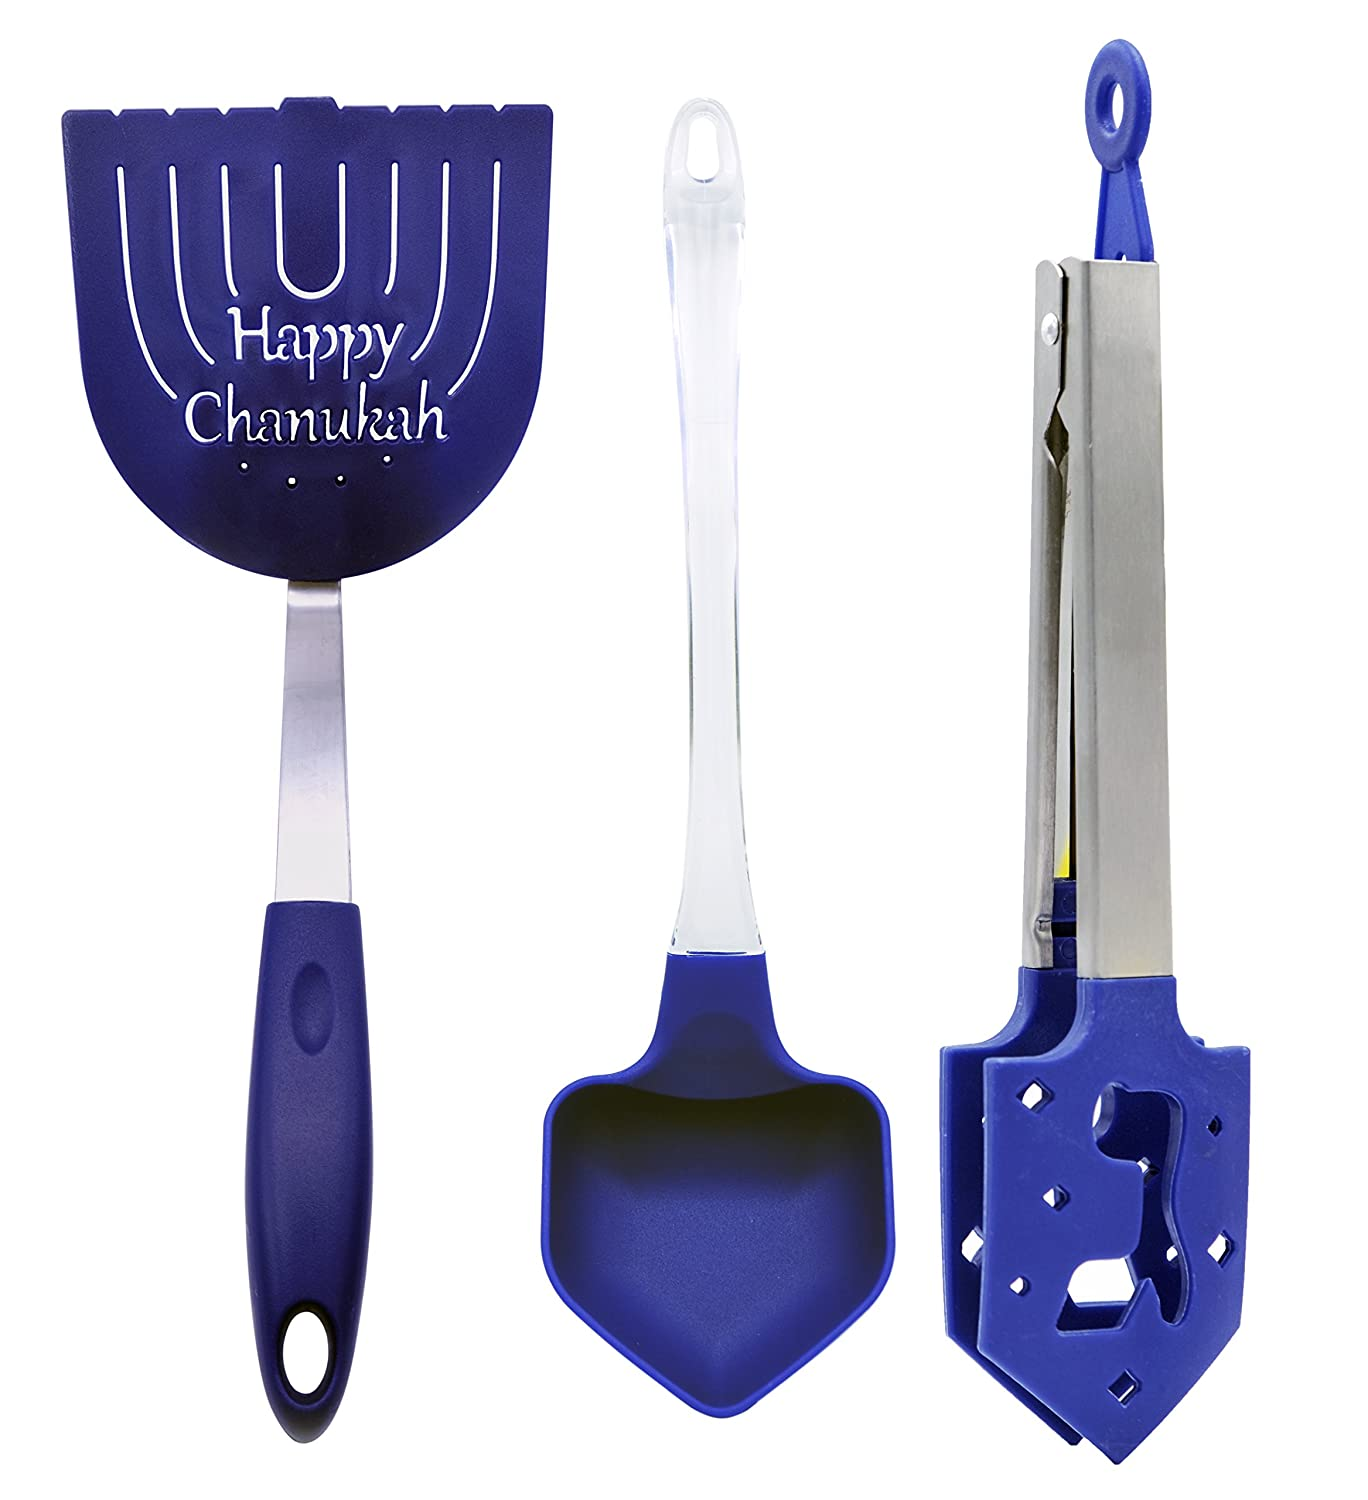 Hanukkah Kitchen Cooking Utensils Set - Includes: Chanukah Latke Spatula, Dreidel Ladle, and Dreidel Shaped Latke Tongs (Set of 3) Rite Lite